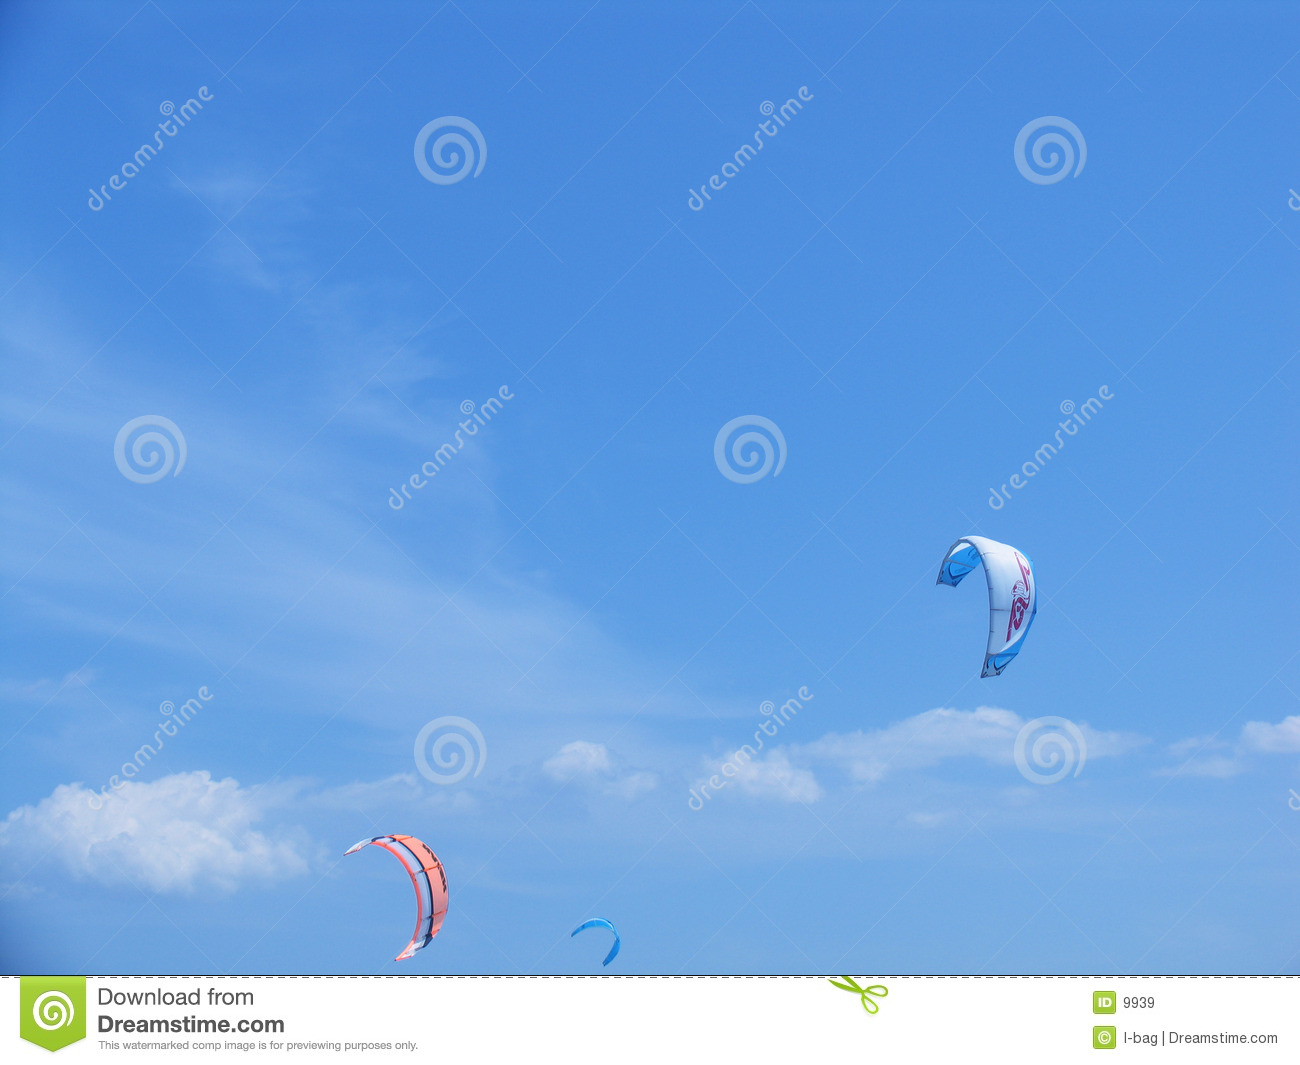 Windsurfing via paragliders